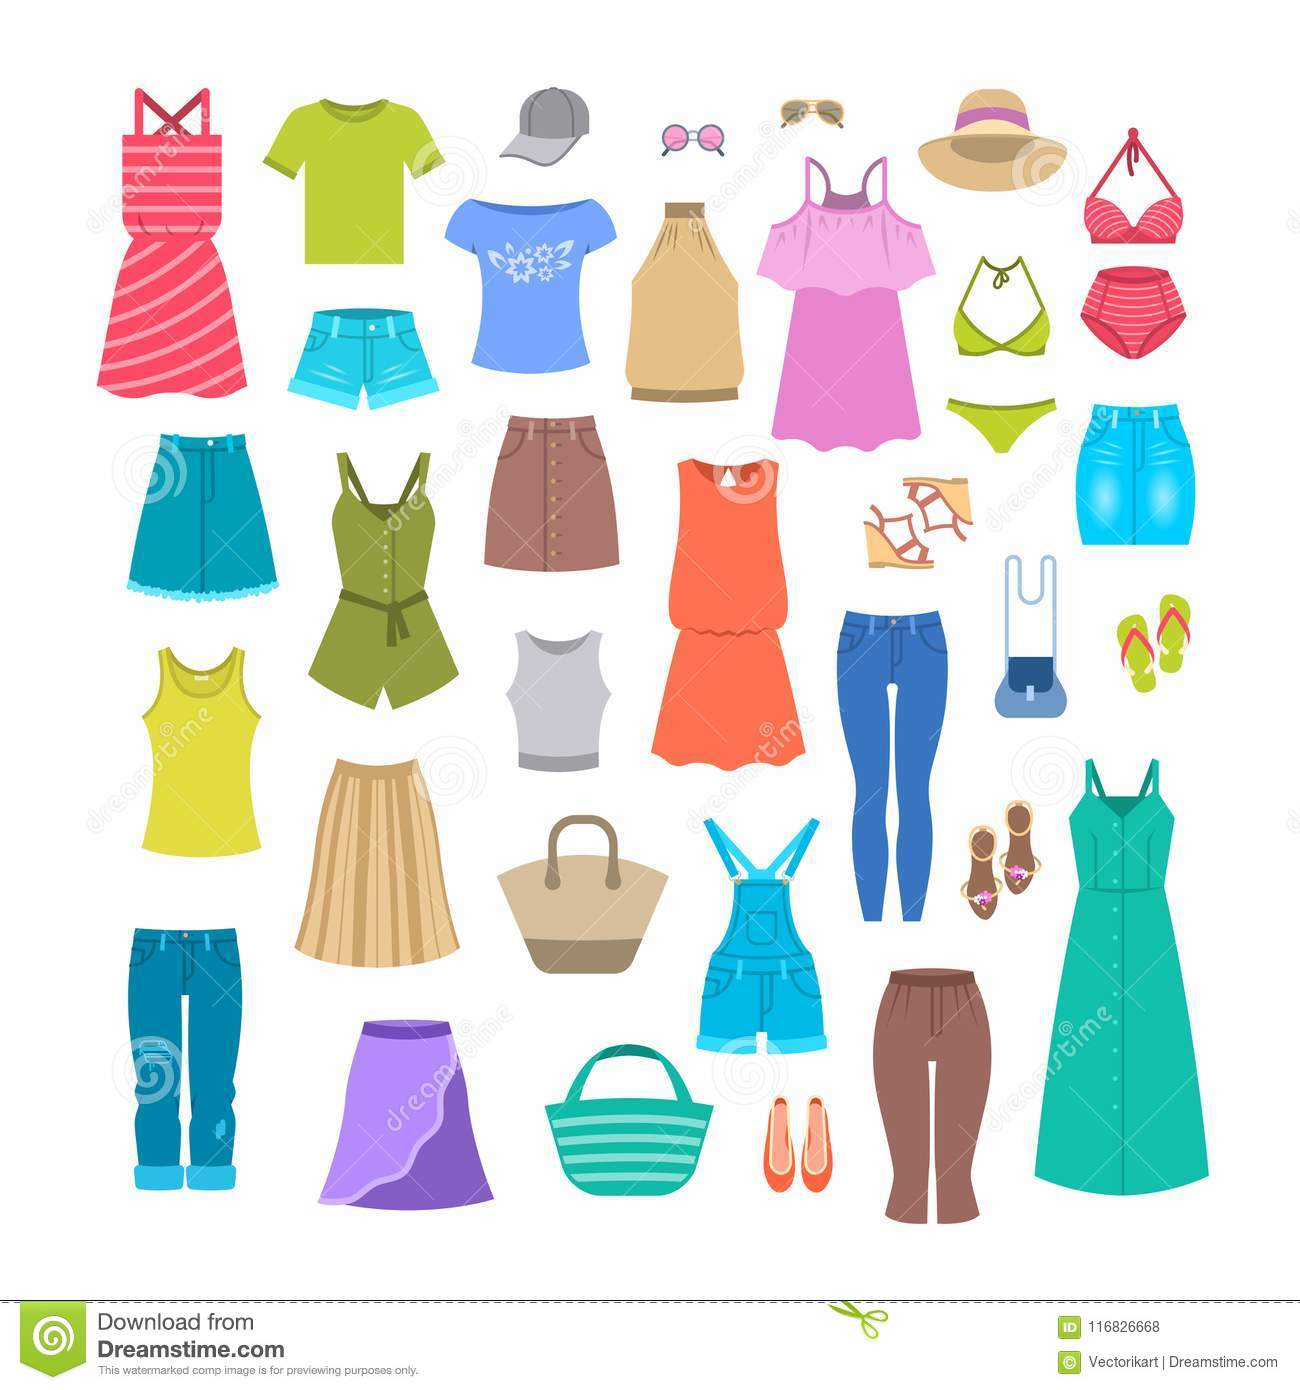 d0b1b6c788 Women clothes and accessories collection for summer vacation. Seasonal  female outfit flat vector icons. Casual fashion infographic elements.